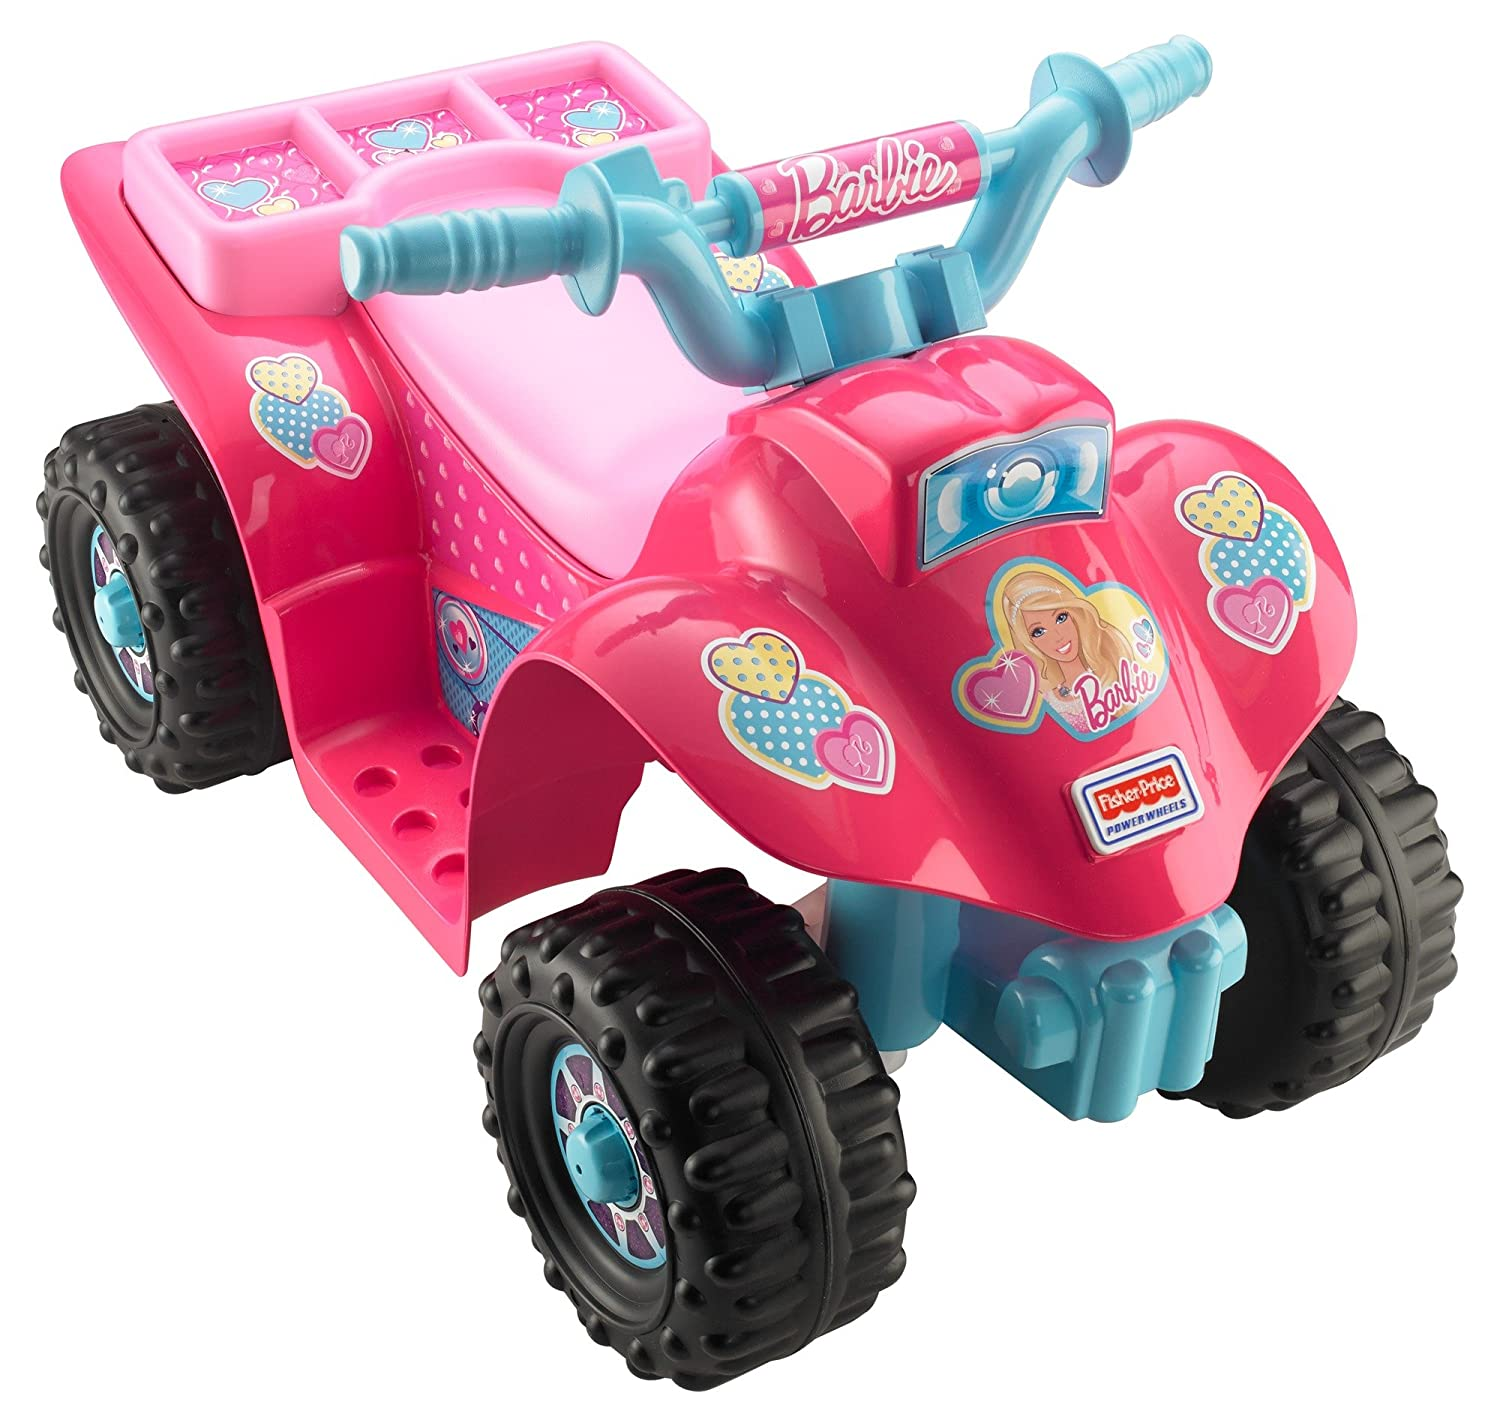 Amazon Power Wheels Barbie Lil Quad Toys & Games